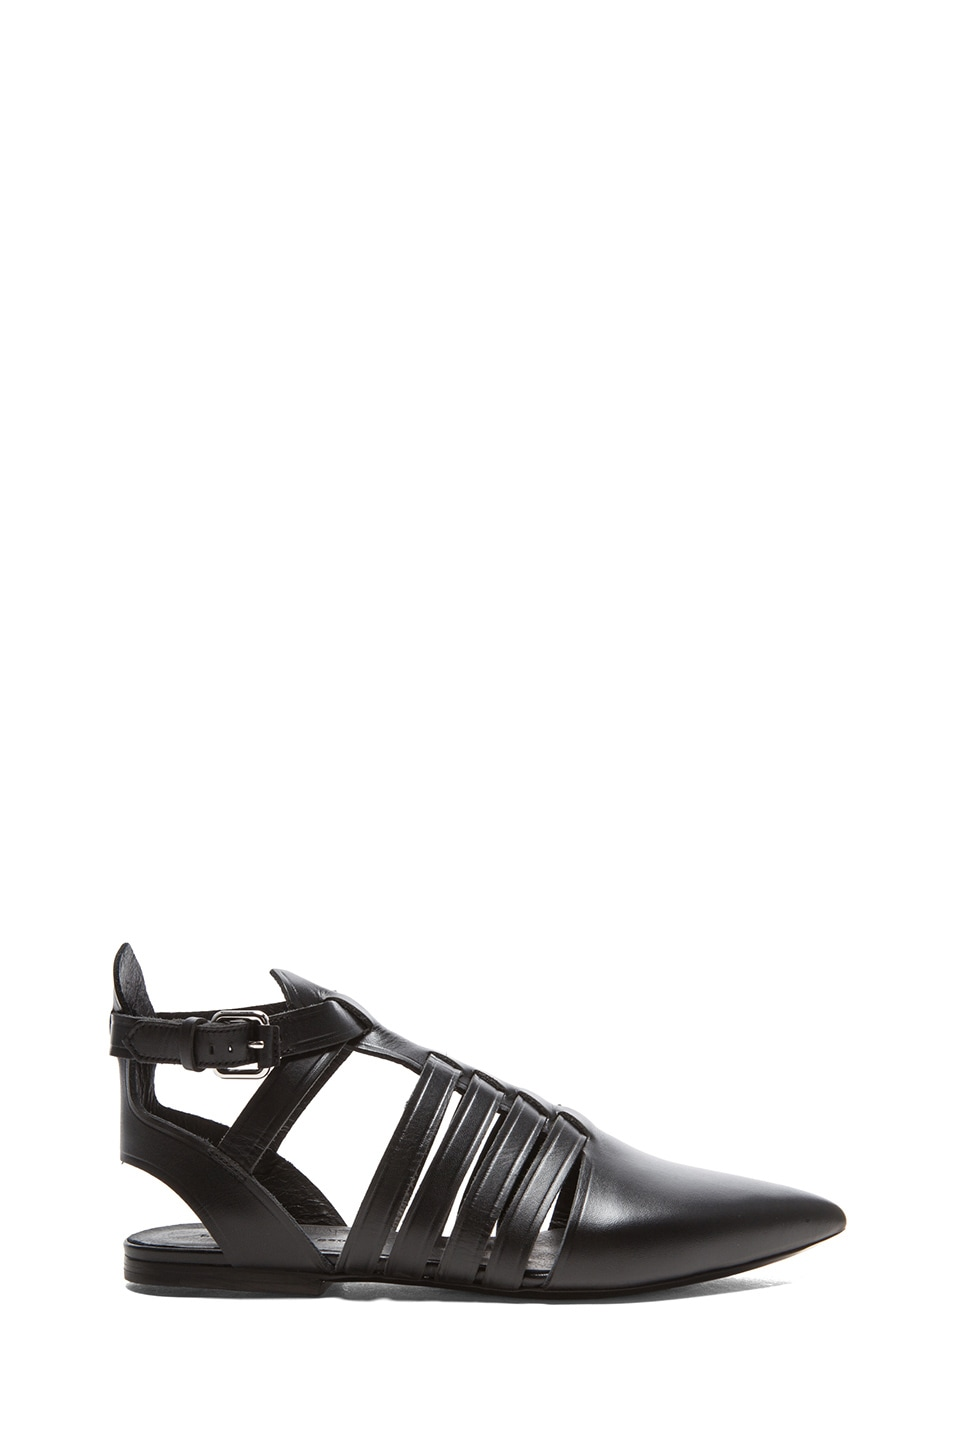 Image 1 of Proenza Schouler Pointed Toe Leather Flats in Black